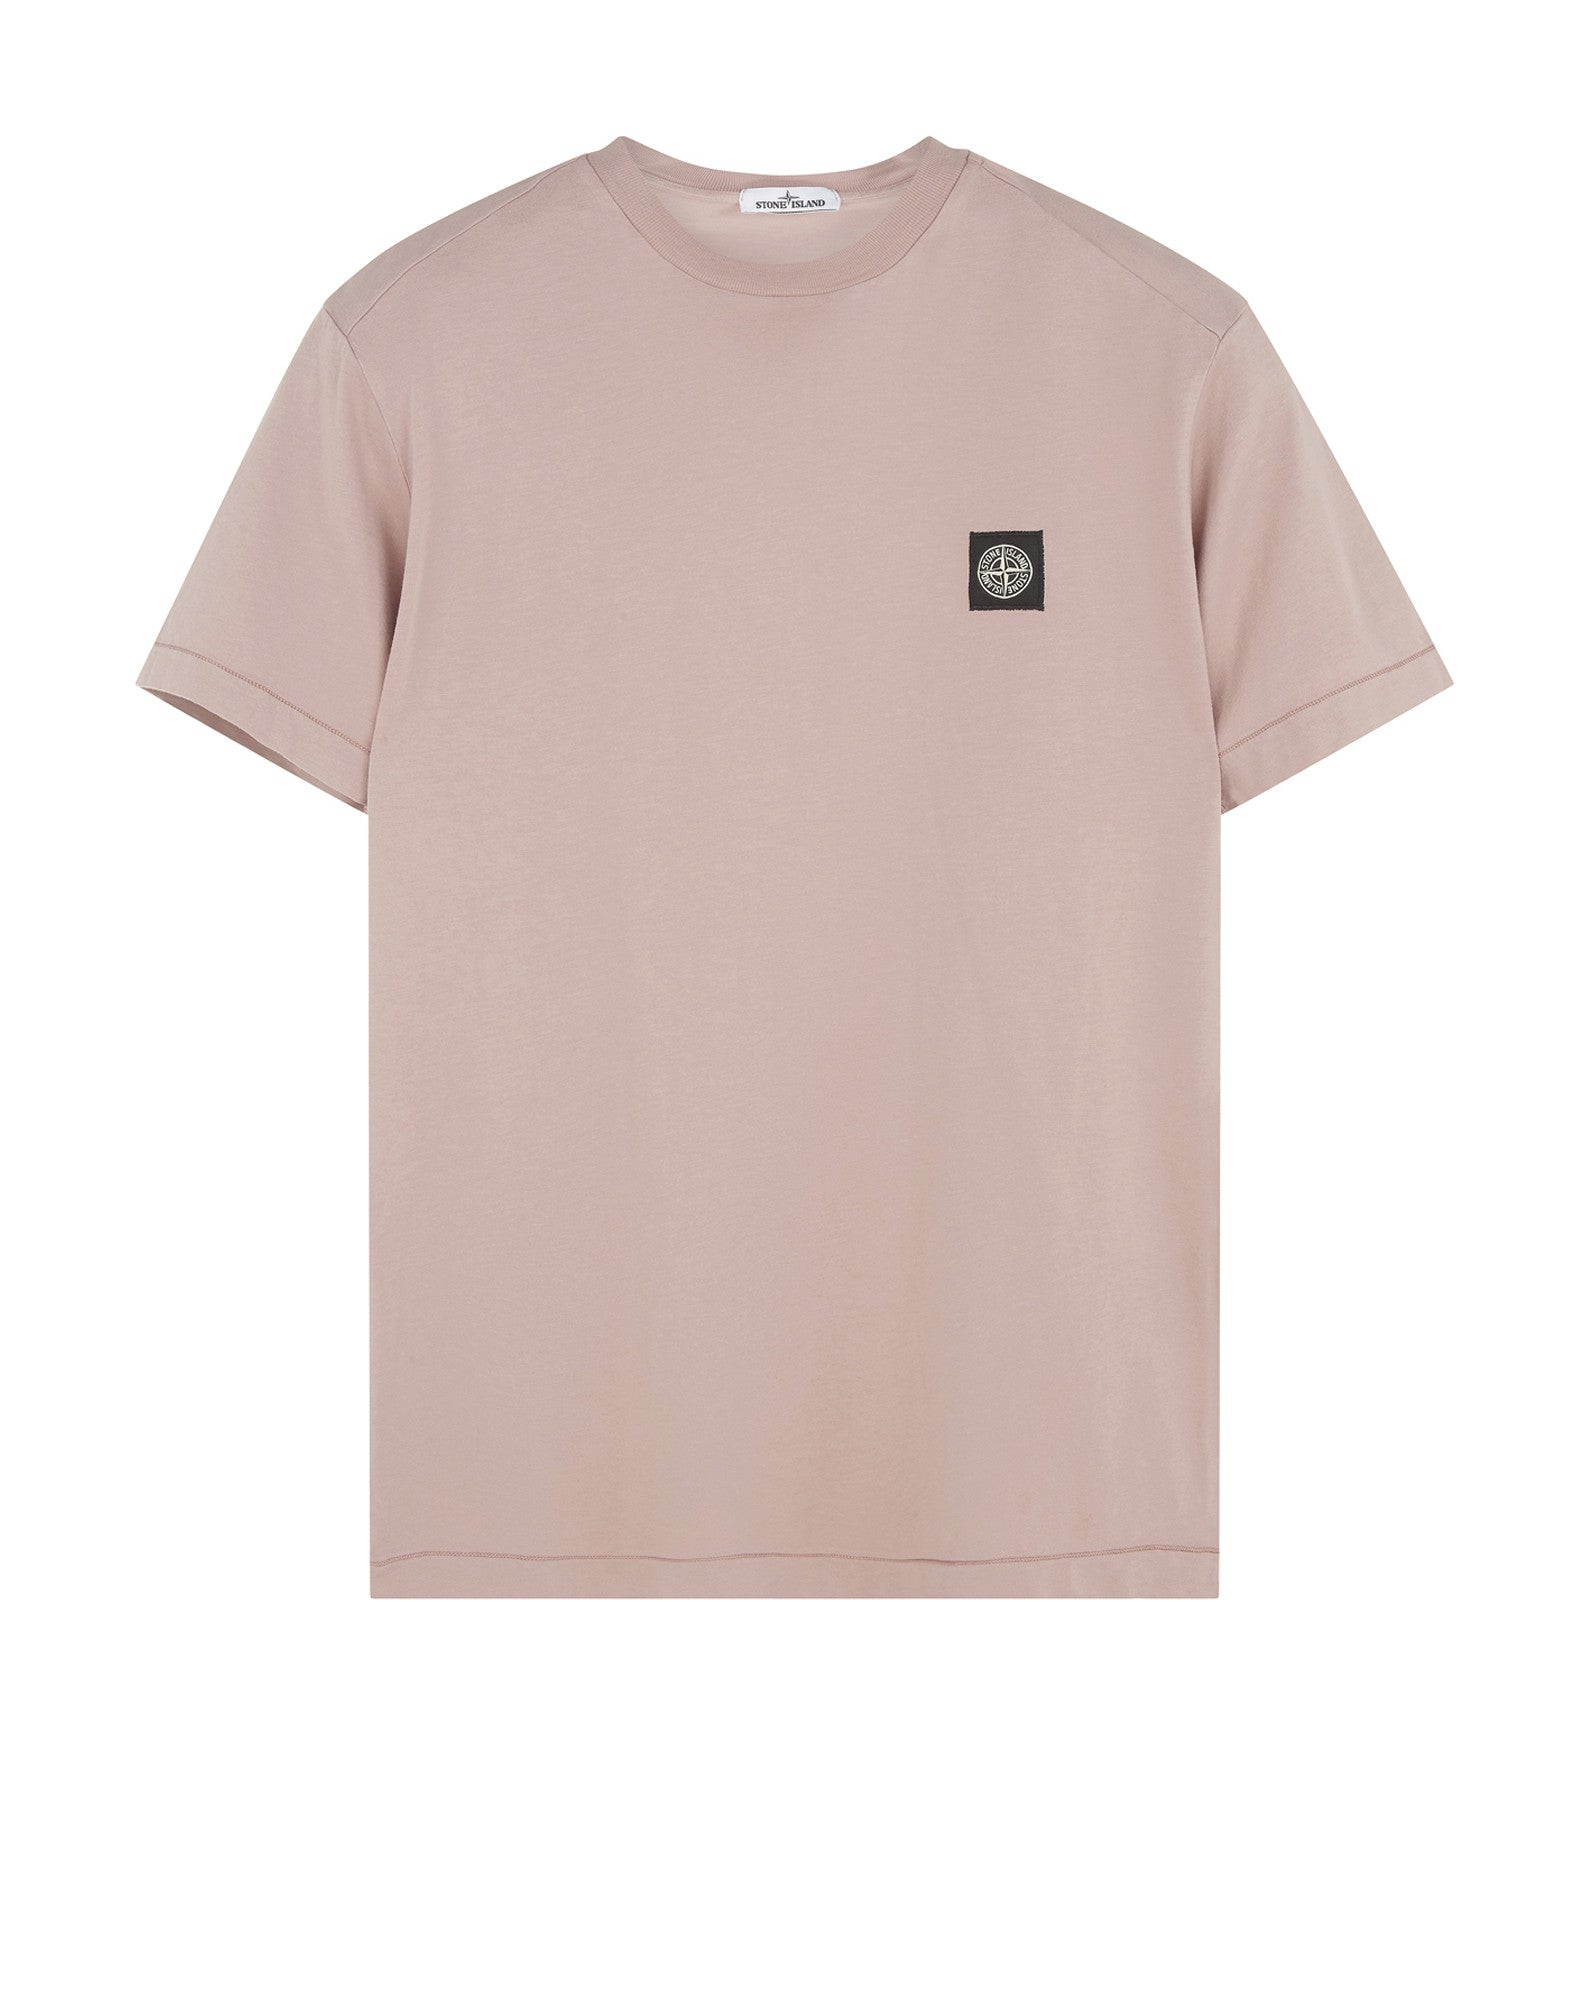 24141 Small Logo Patch T-Shirt in Light Red